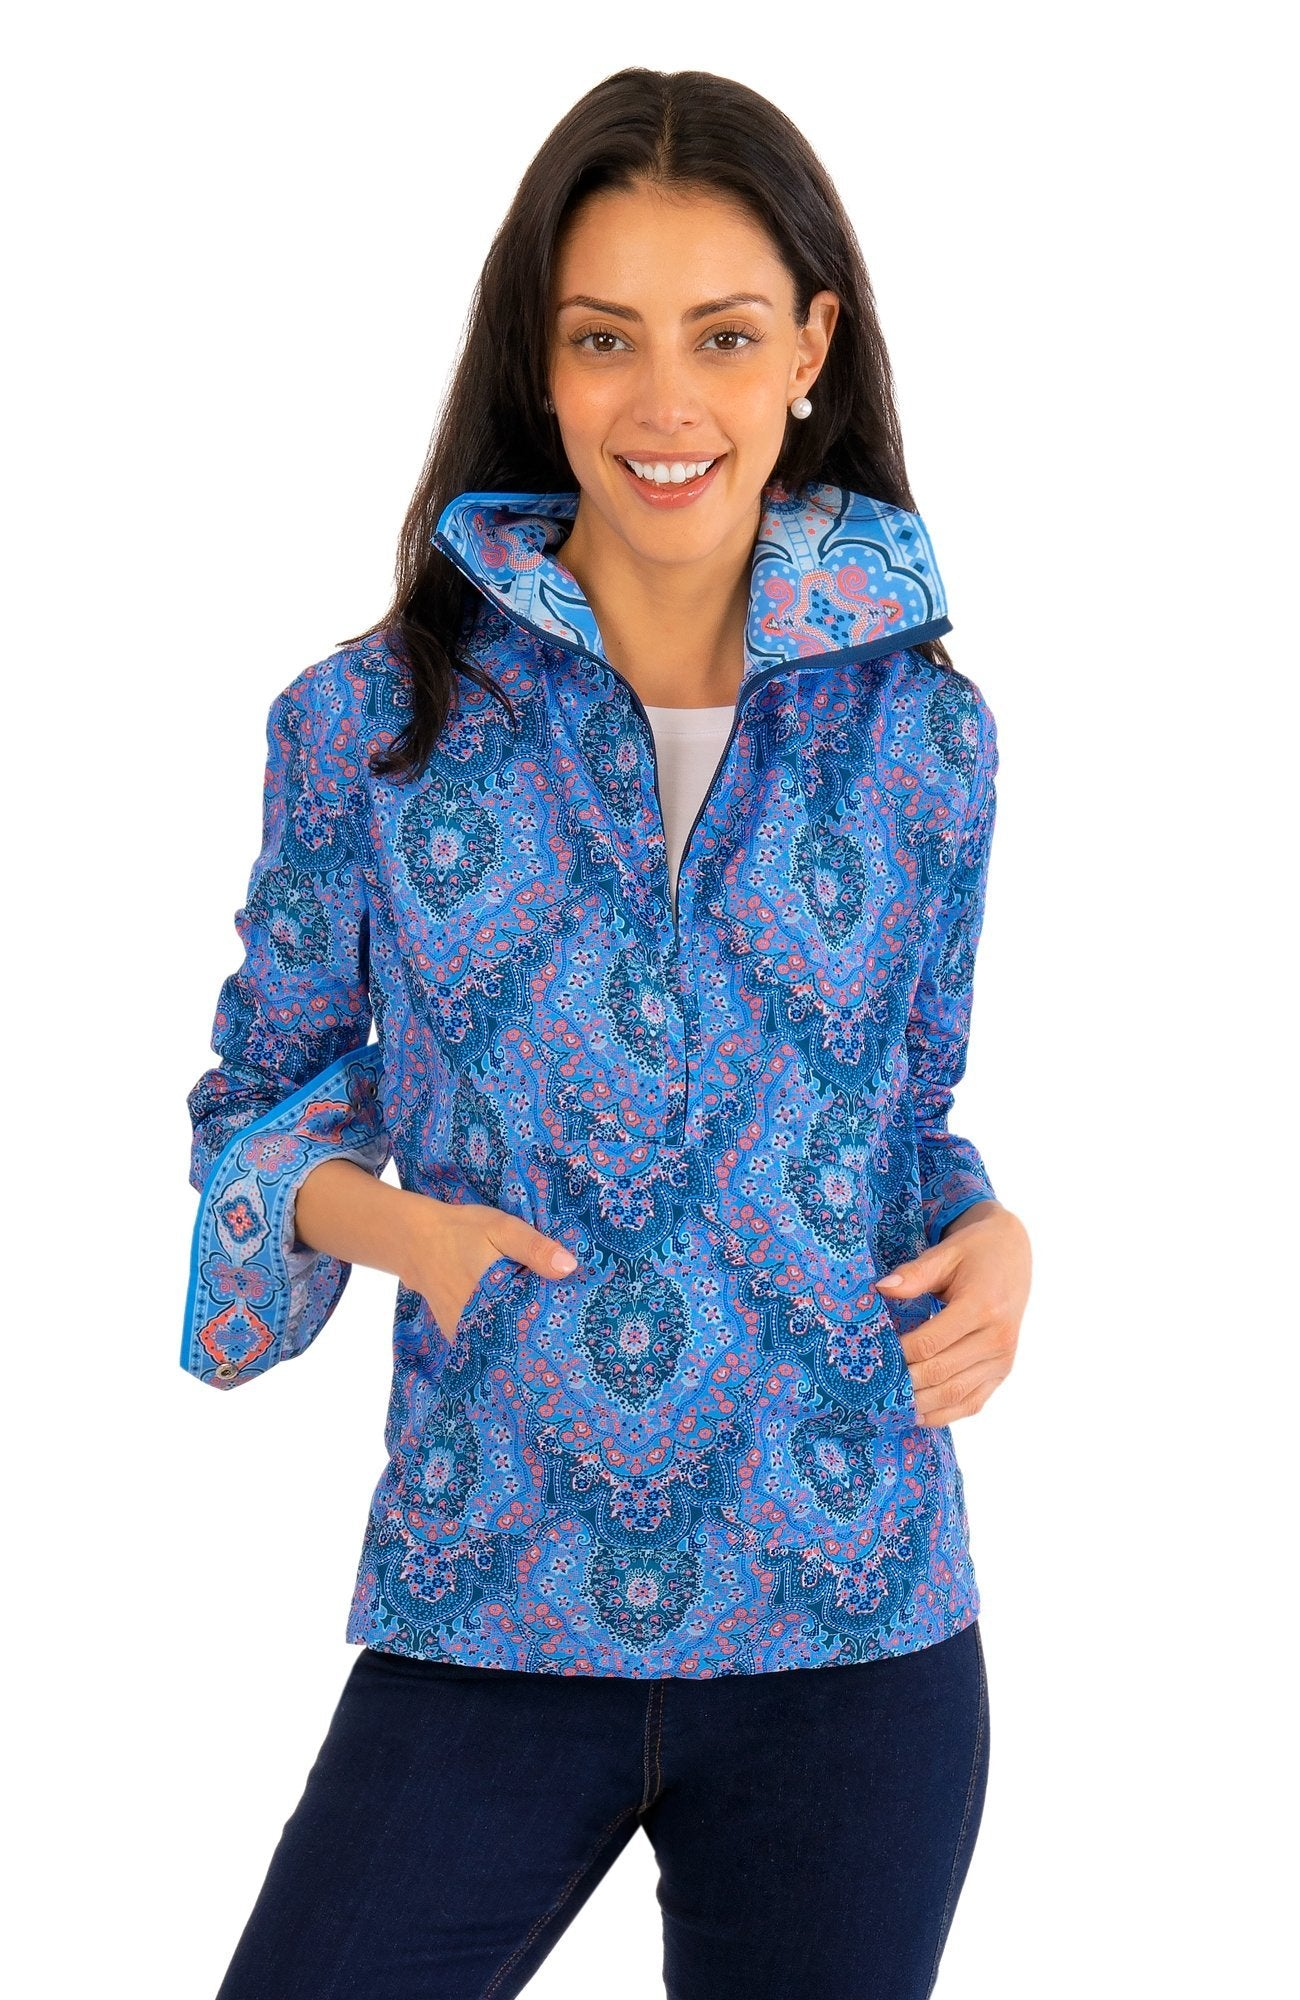 WINDBREAKER - PLEASANTLY PAISLEY - JKWJPP - Molly's! A Chic and Unique Boutique